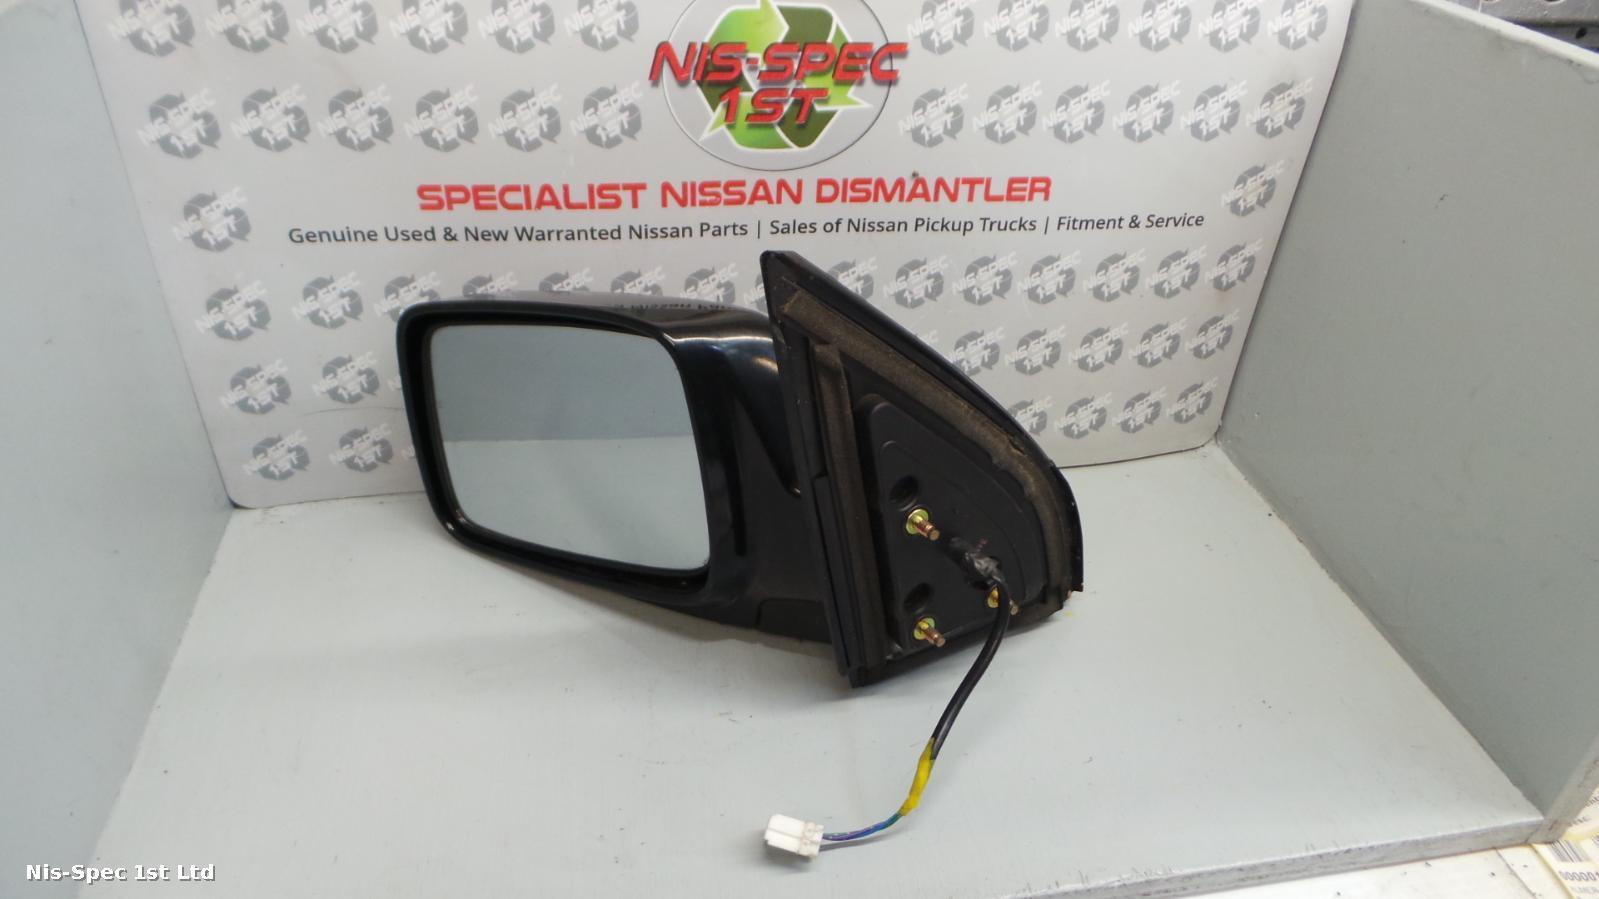 X TRAIL PASSENGER DOOR MIRROR 3 WIRE BLACK T30 01-06